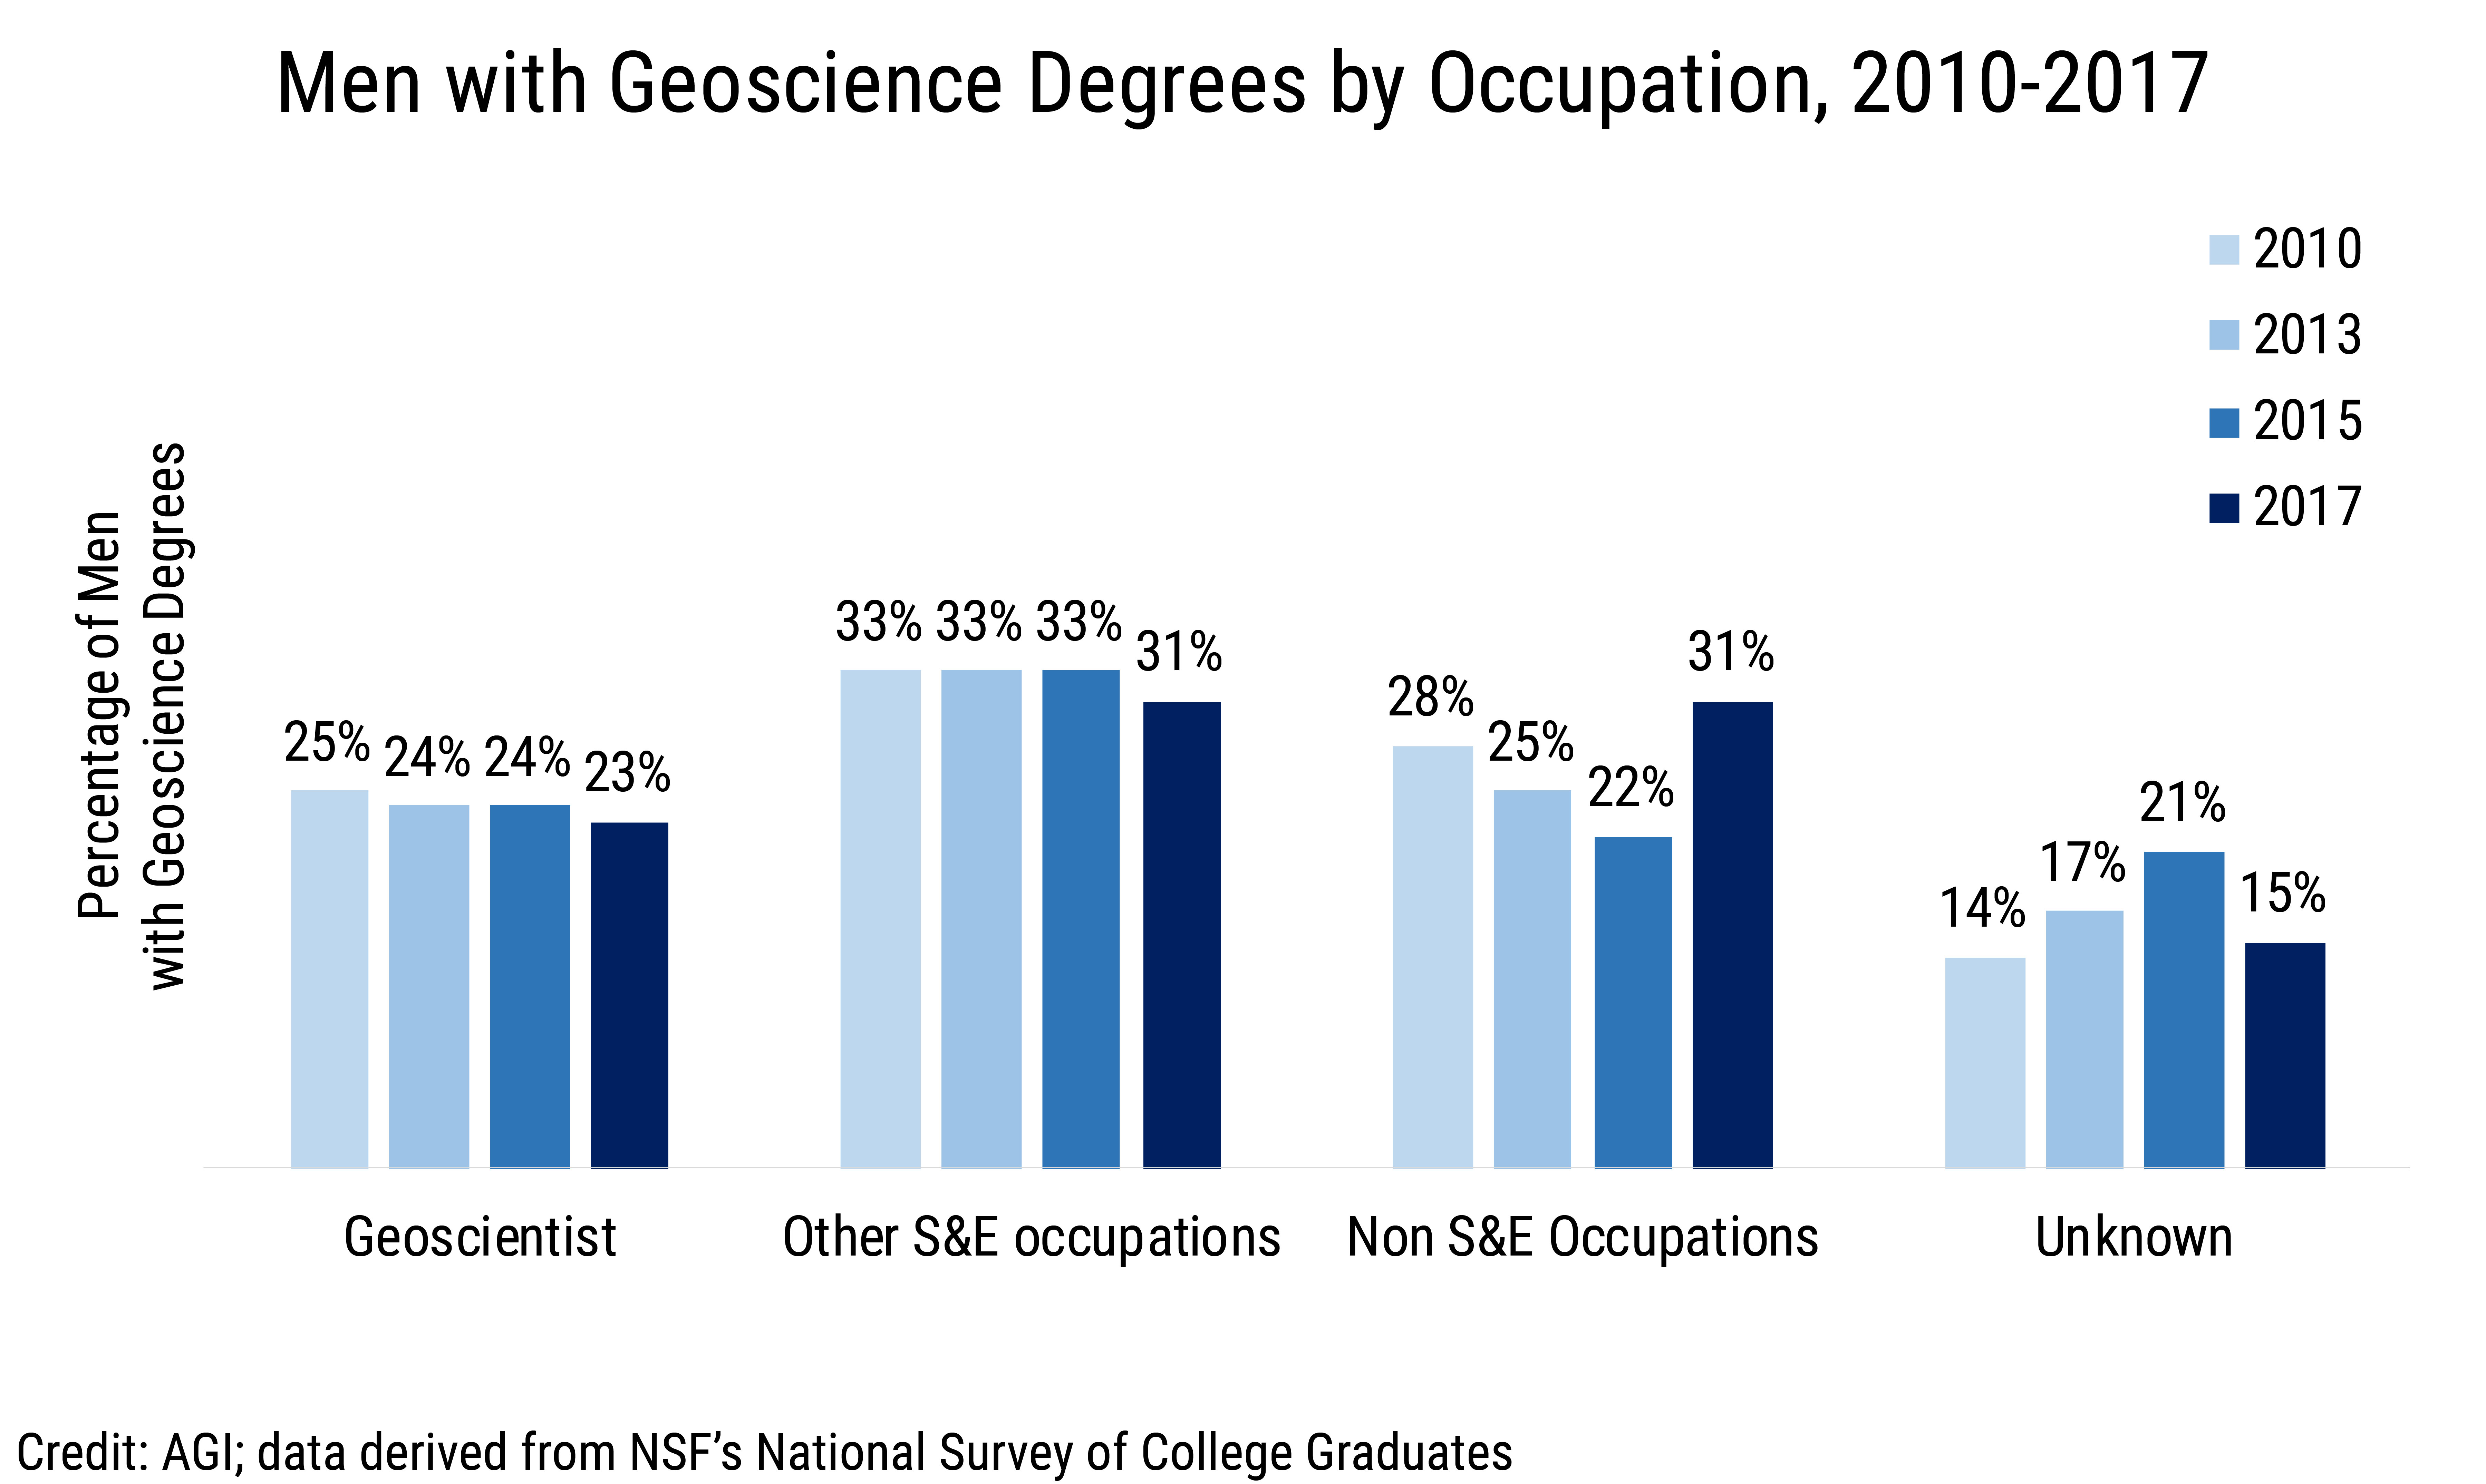 Data Brief 2019-015 chart 04: Men with Geoscience Degrees by Occupation  (credit: AGI; data derived from NSF NSCG)